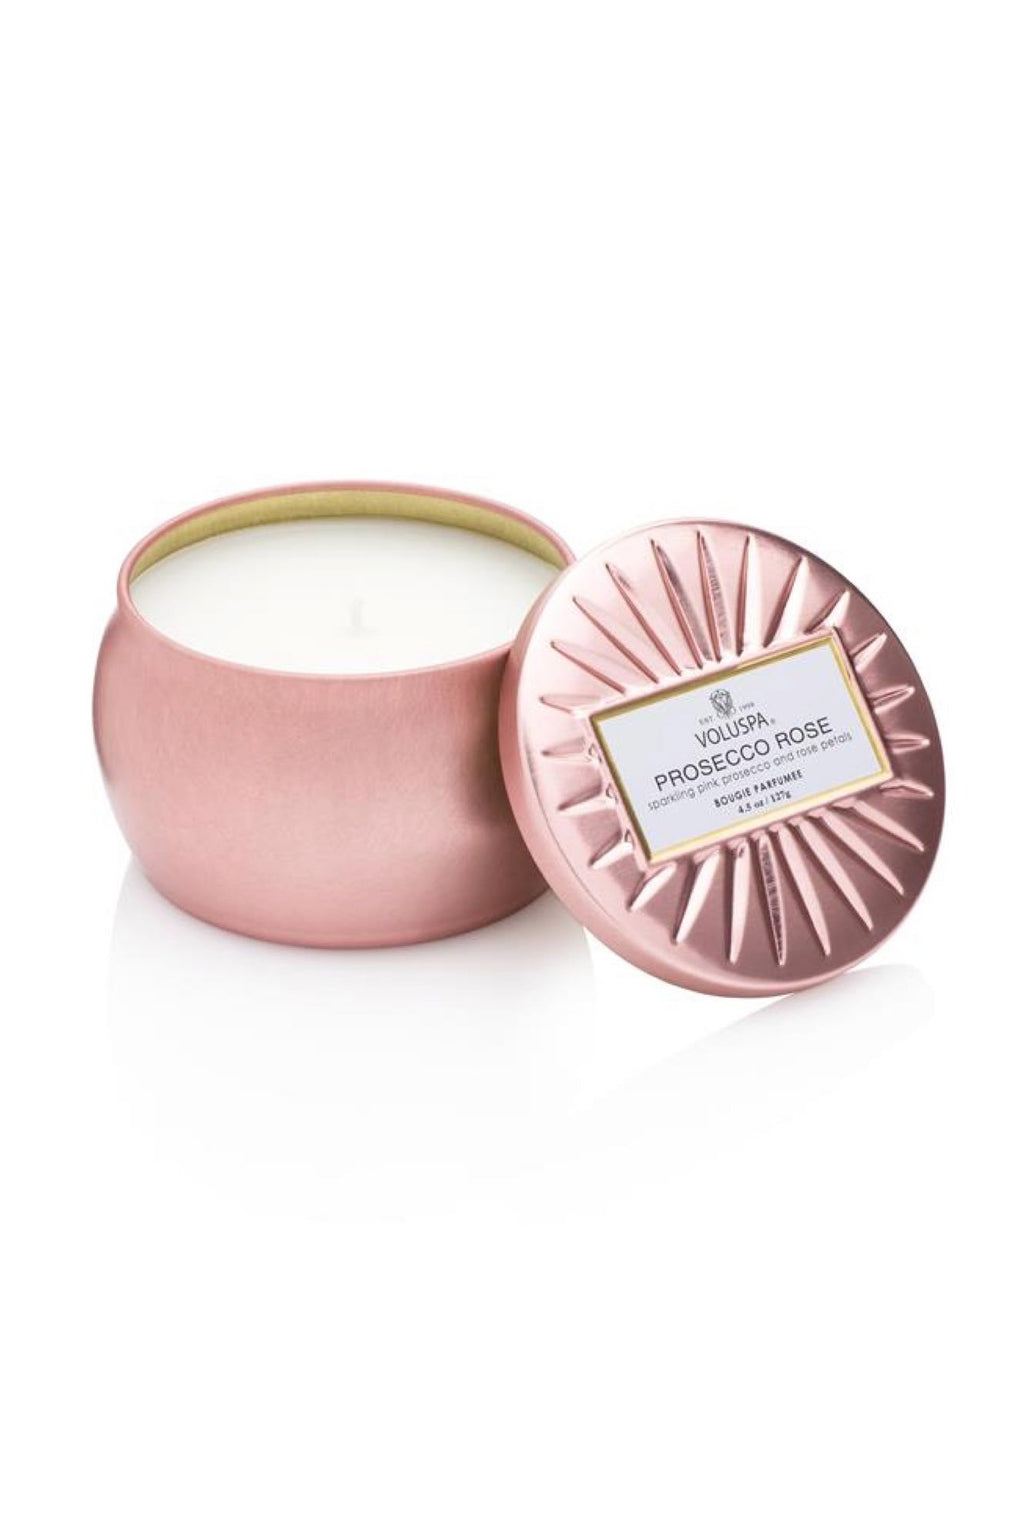 Voluspa Dec Tin Candle 25tim Prosecco Rose